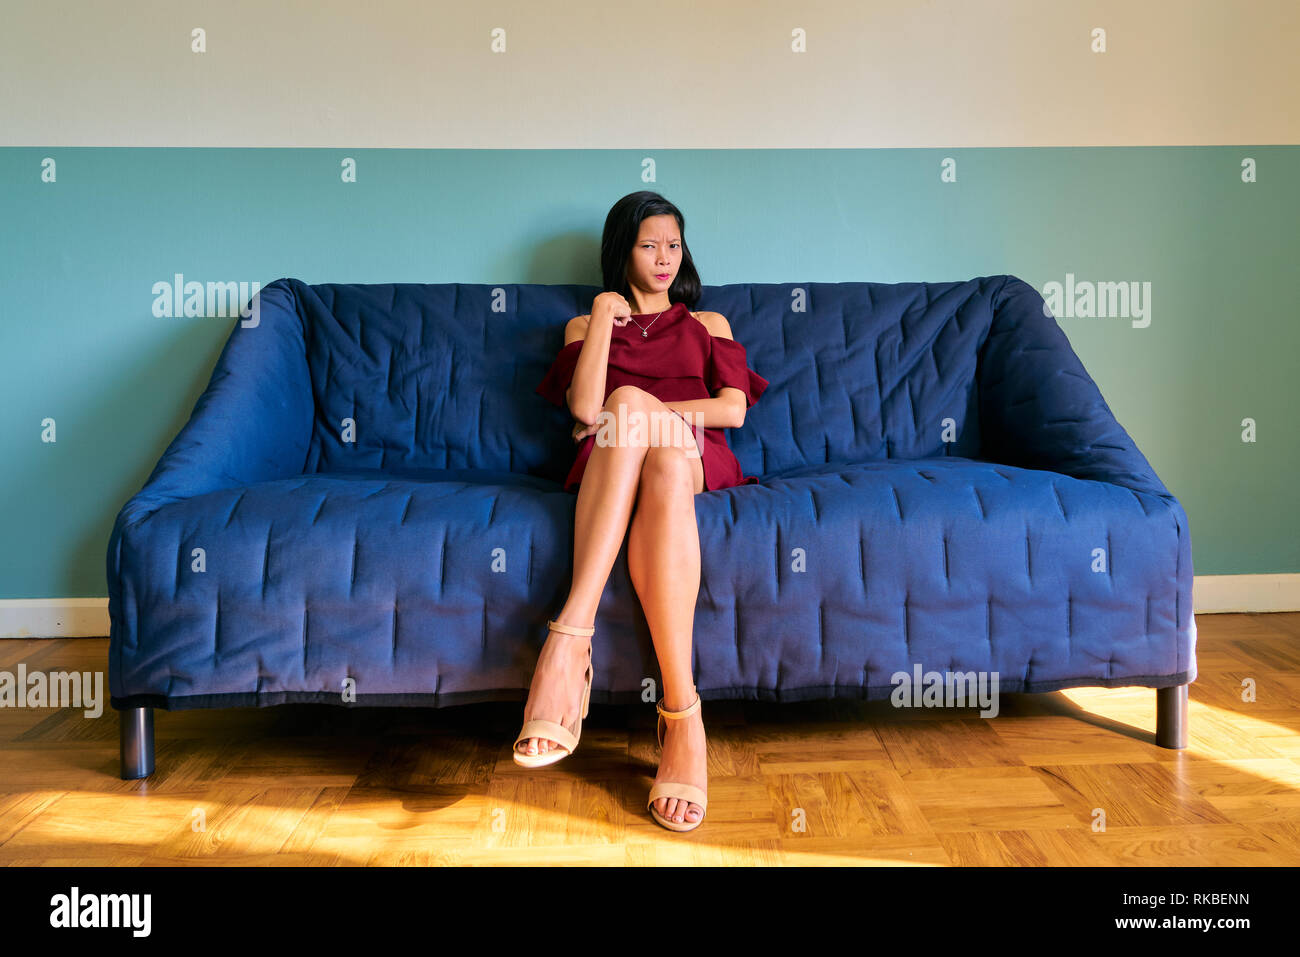 Beautiful woman posing - attractive young woman pointing herself sitting on the sofa - Stock Image